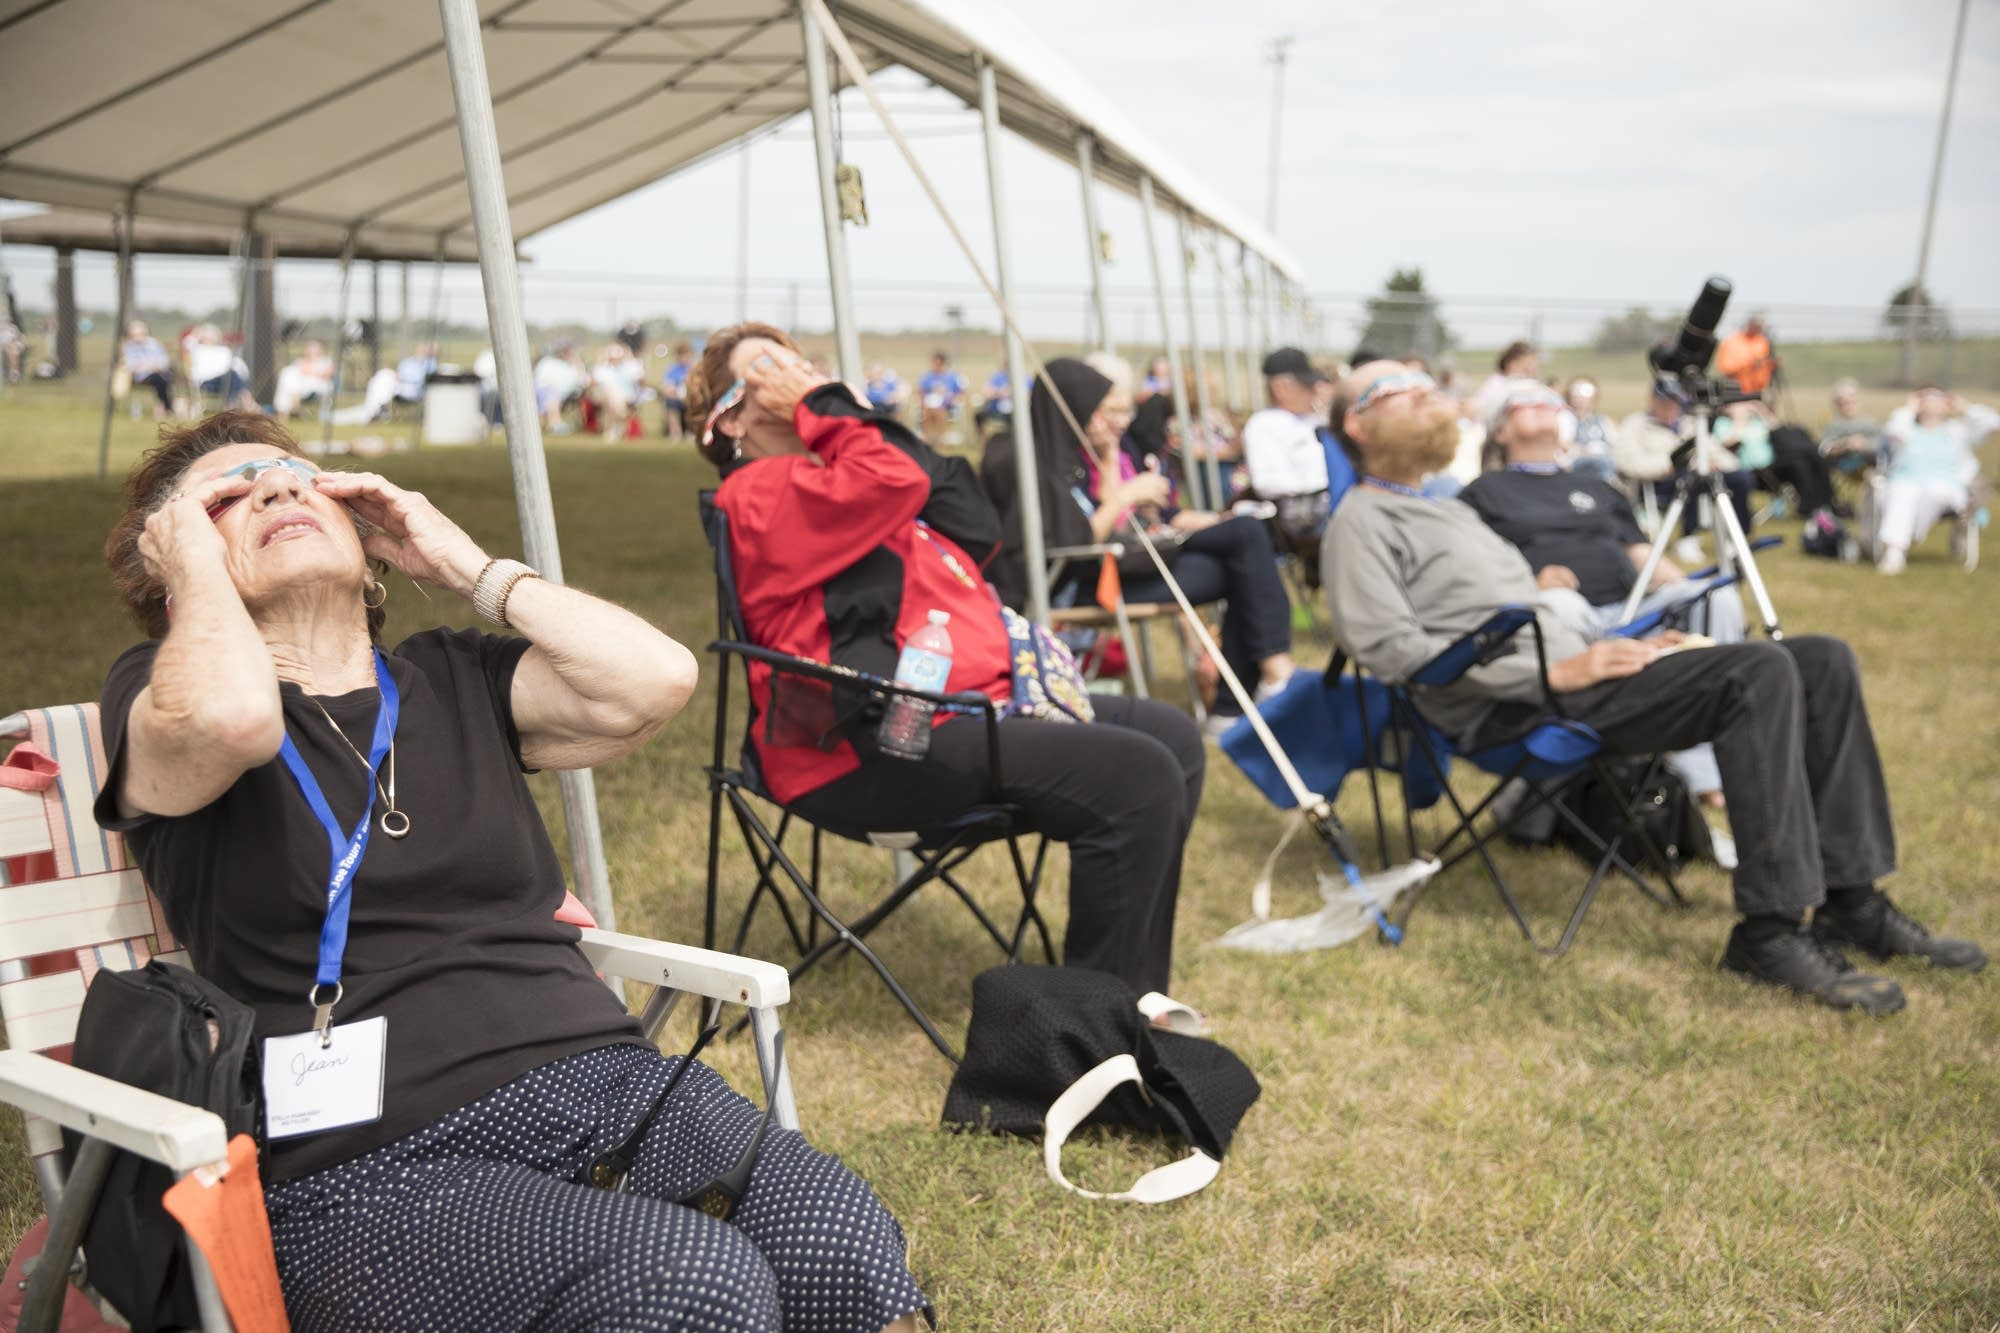 People that came to watch the eclipse stare into the sky.